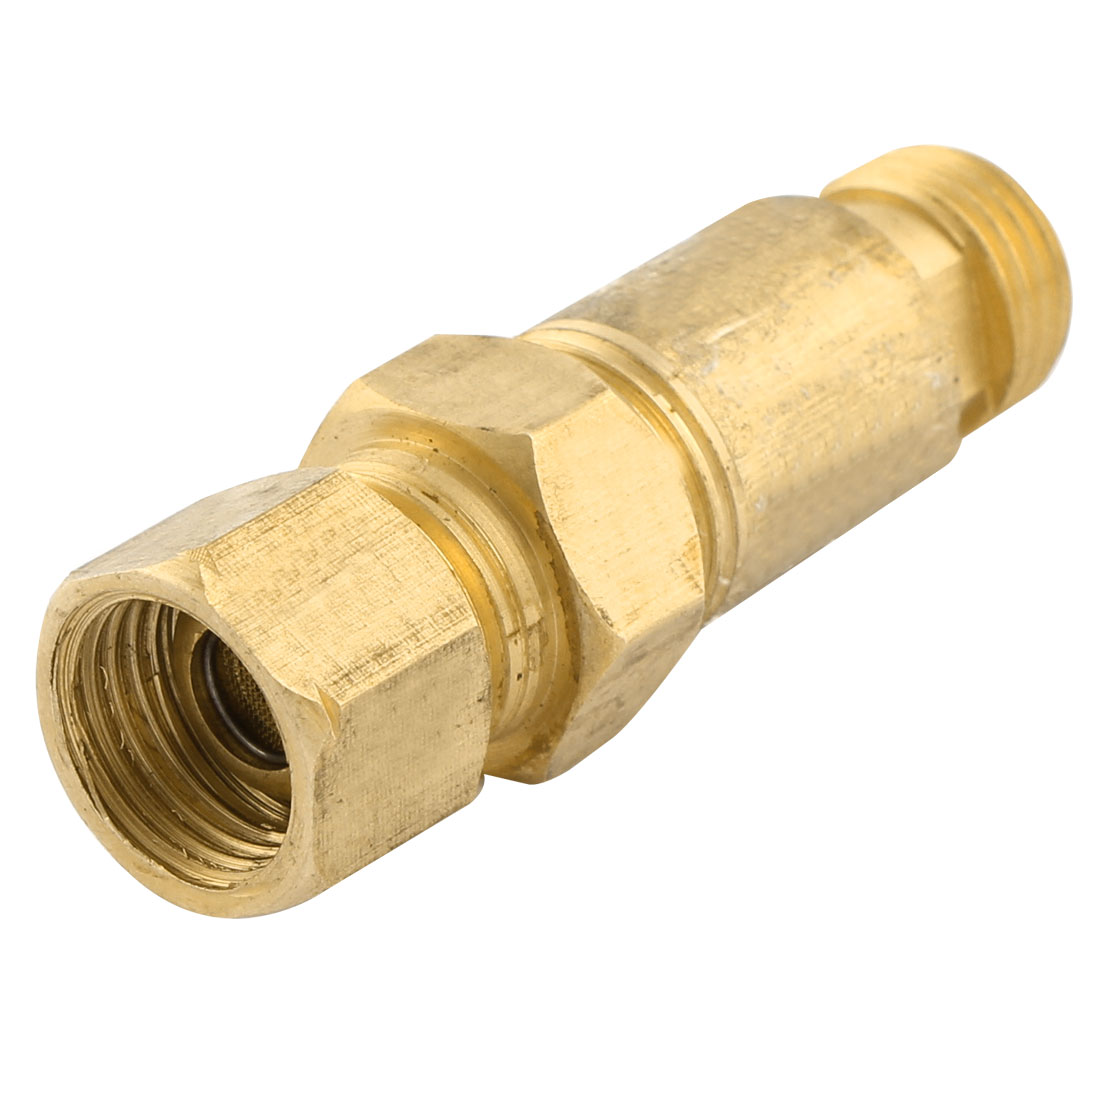 Gold Tone HF-2 Metal Male to Female Thread Liquefied Propane Gas Dry Flashback Arrestor Check Valve